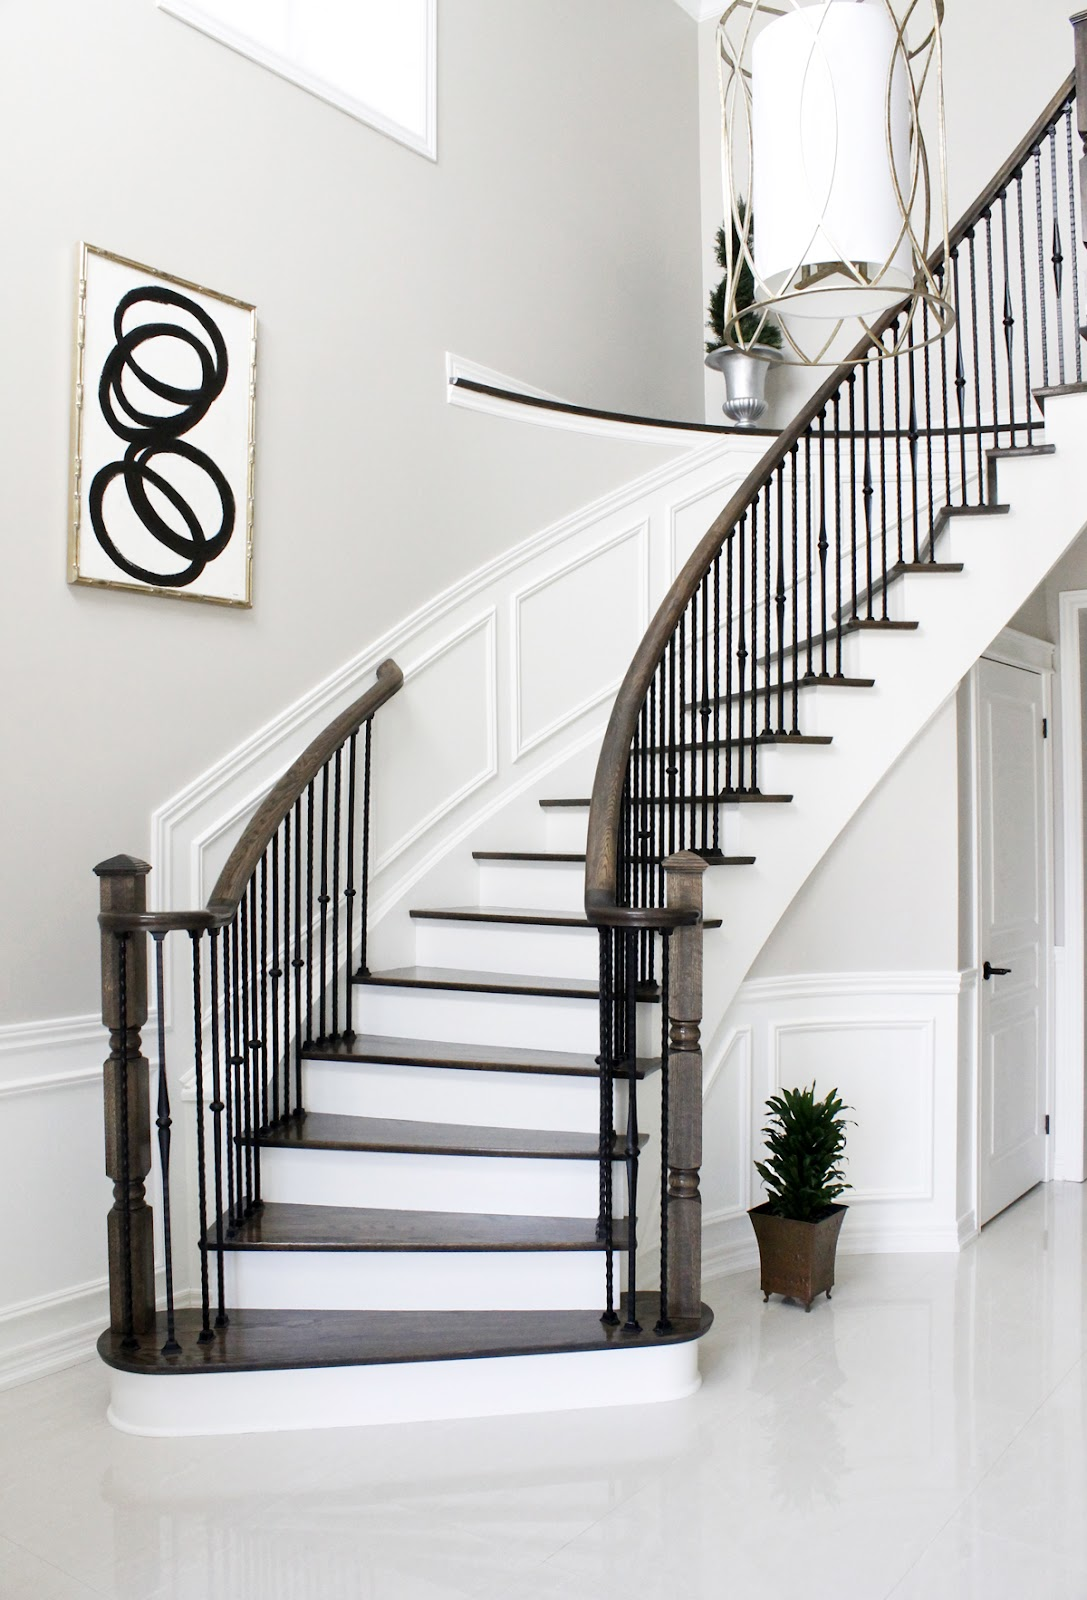 Painting Foyer Stairs : Am dolce vita painted staircase reveal